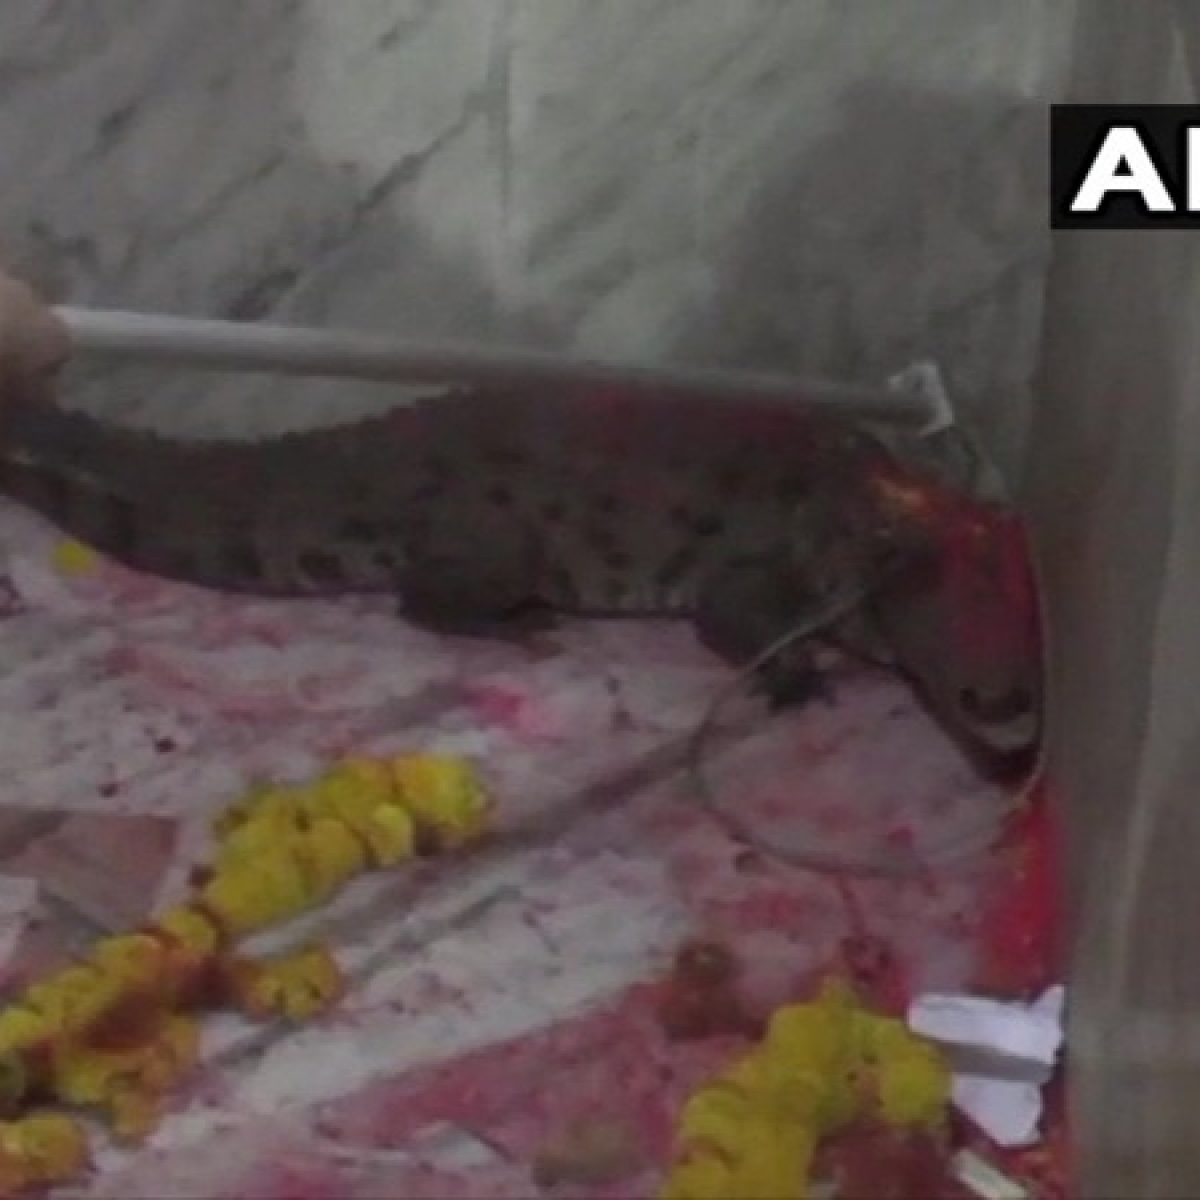 Gujarat: Crocodile strayed inside temple, devotees gather claiming it to be 'auspicious'